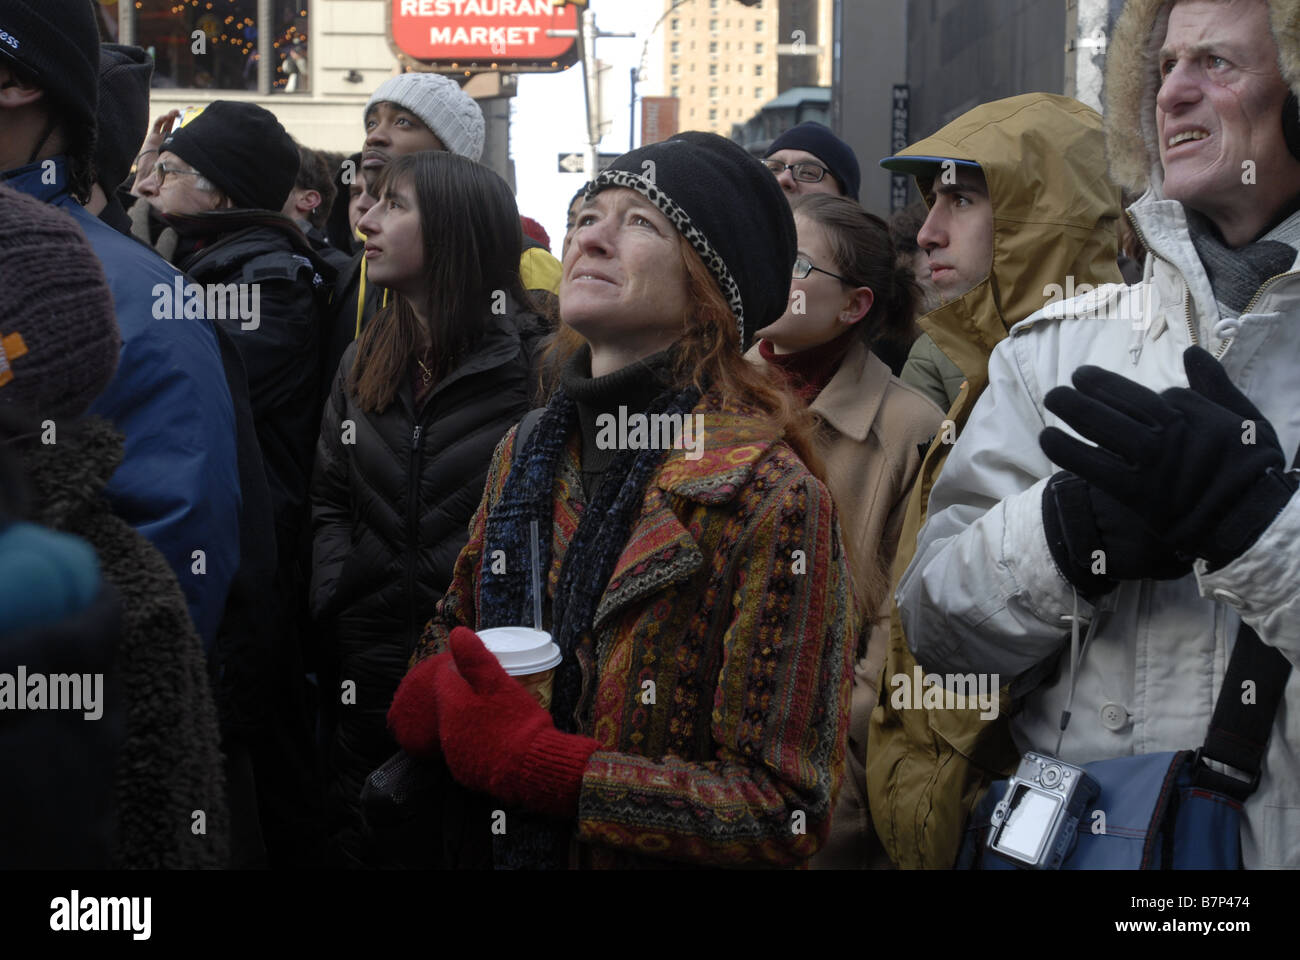 Thousands of people gather in Times Square in New York on Tuesday January 20 2009 to watch the inauguration of Barack - Stock Image